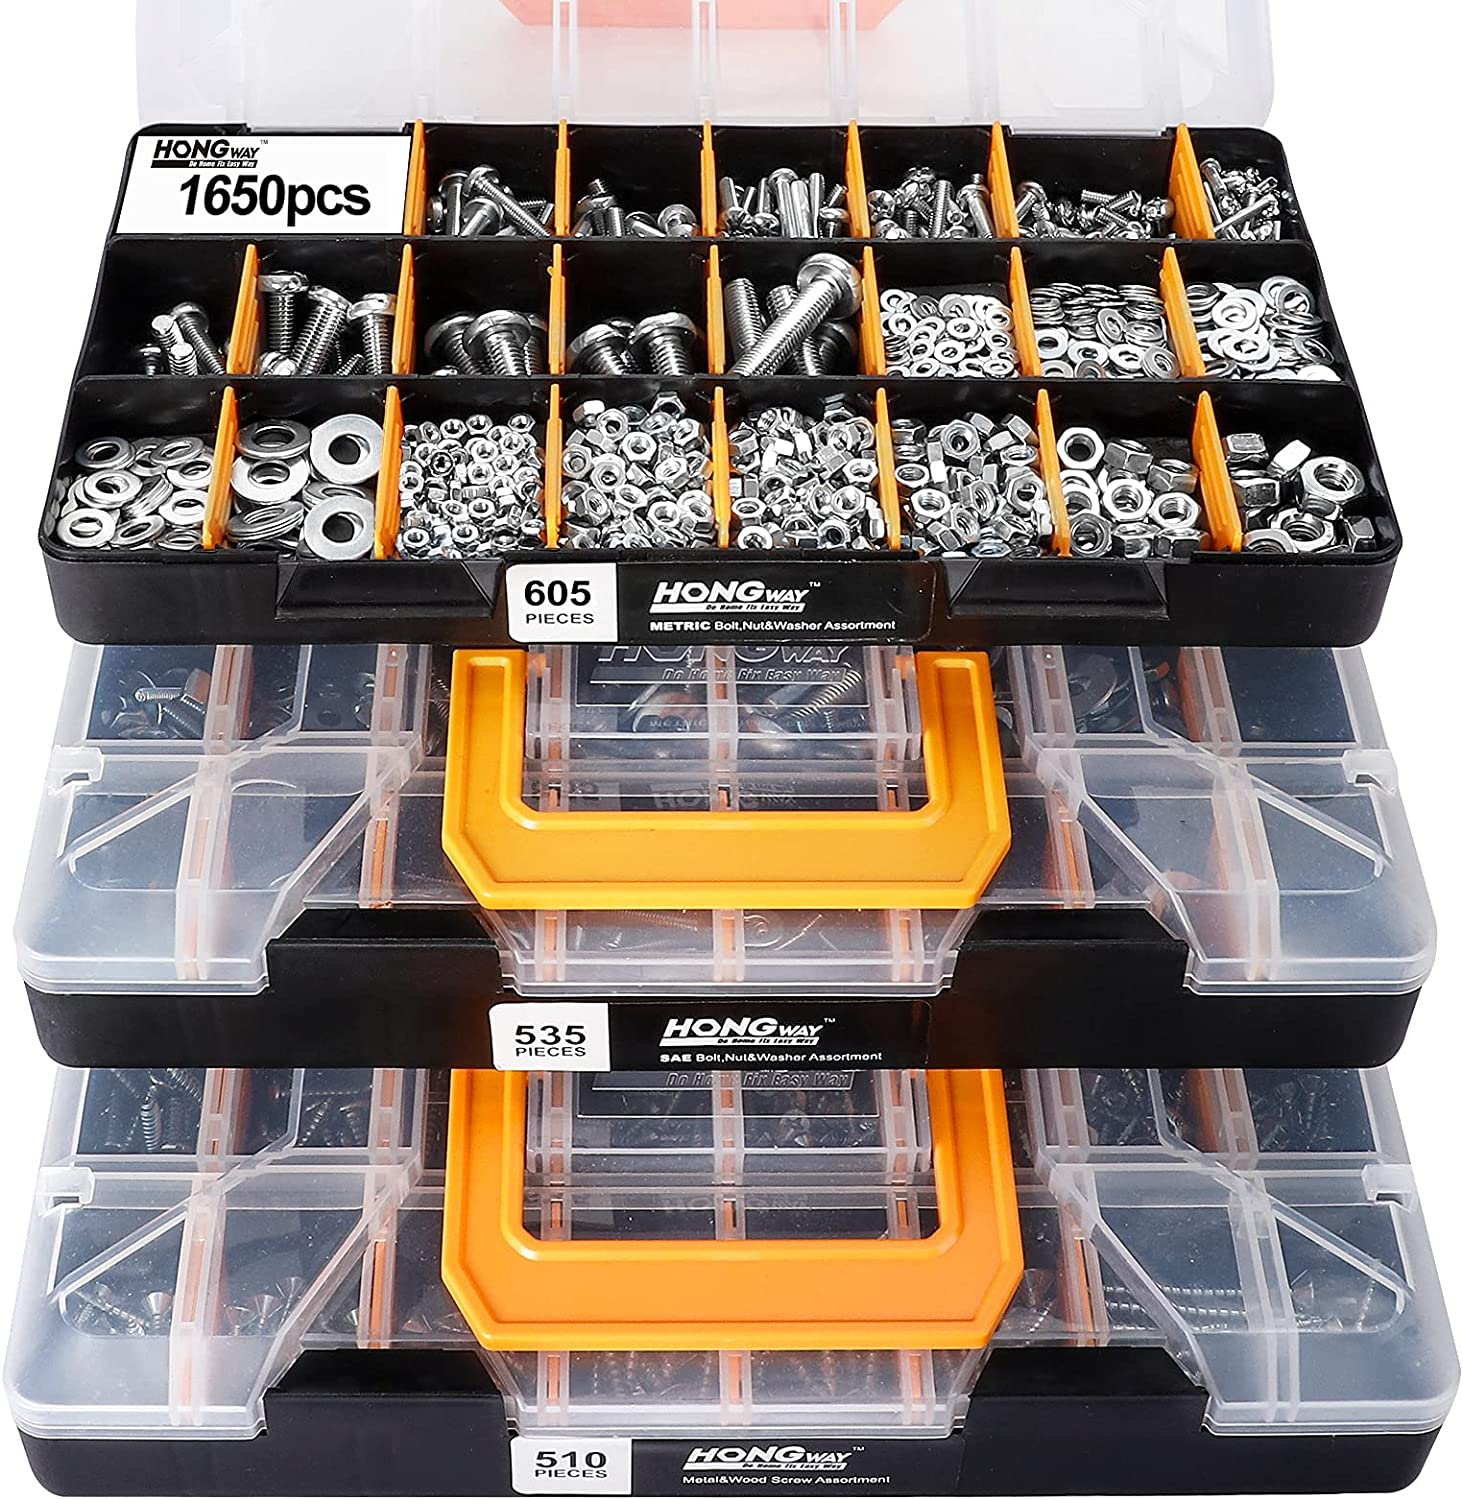 HongWay 3 Trays 1,650 Pieces Deluxe Hardware Fasteners Assortment Kit with 64 Sizes in Detachable and Combinable